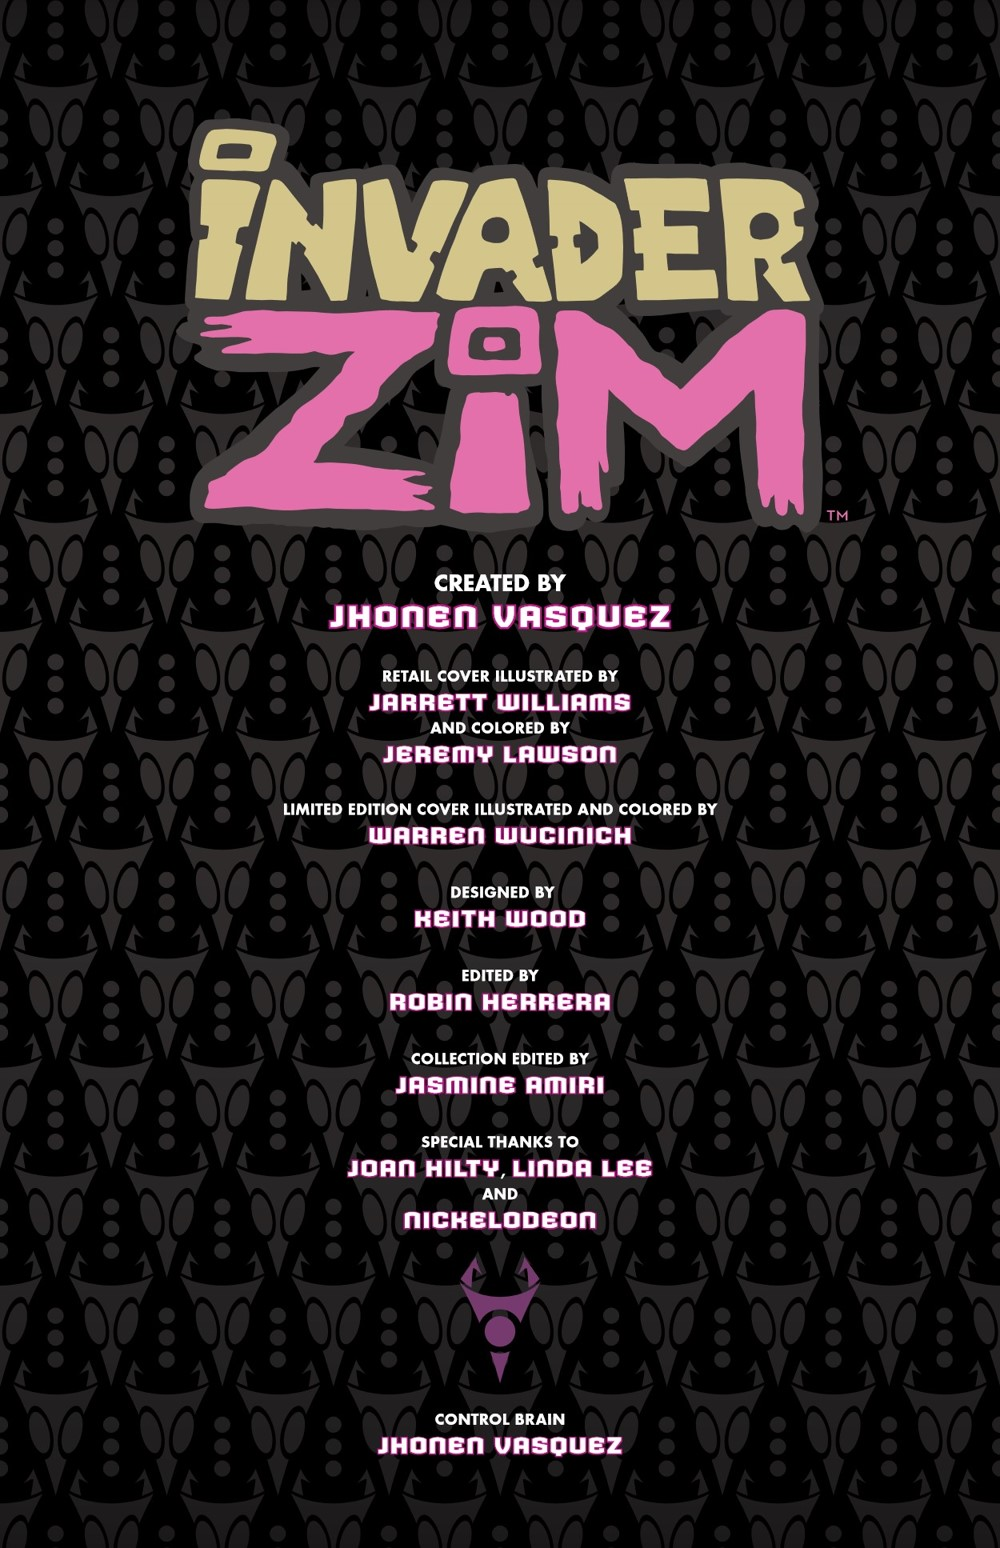 INVADERZIM5-HC-REFERENCE-004 ComicList Previews: INVADER ZIM DELUXE EDITION VOLUME 5 HC